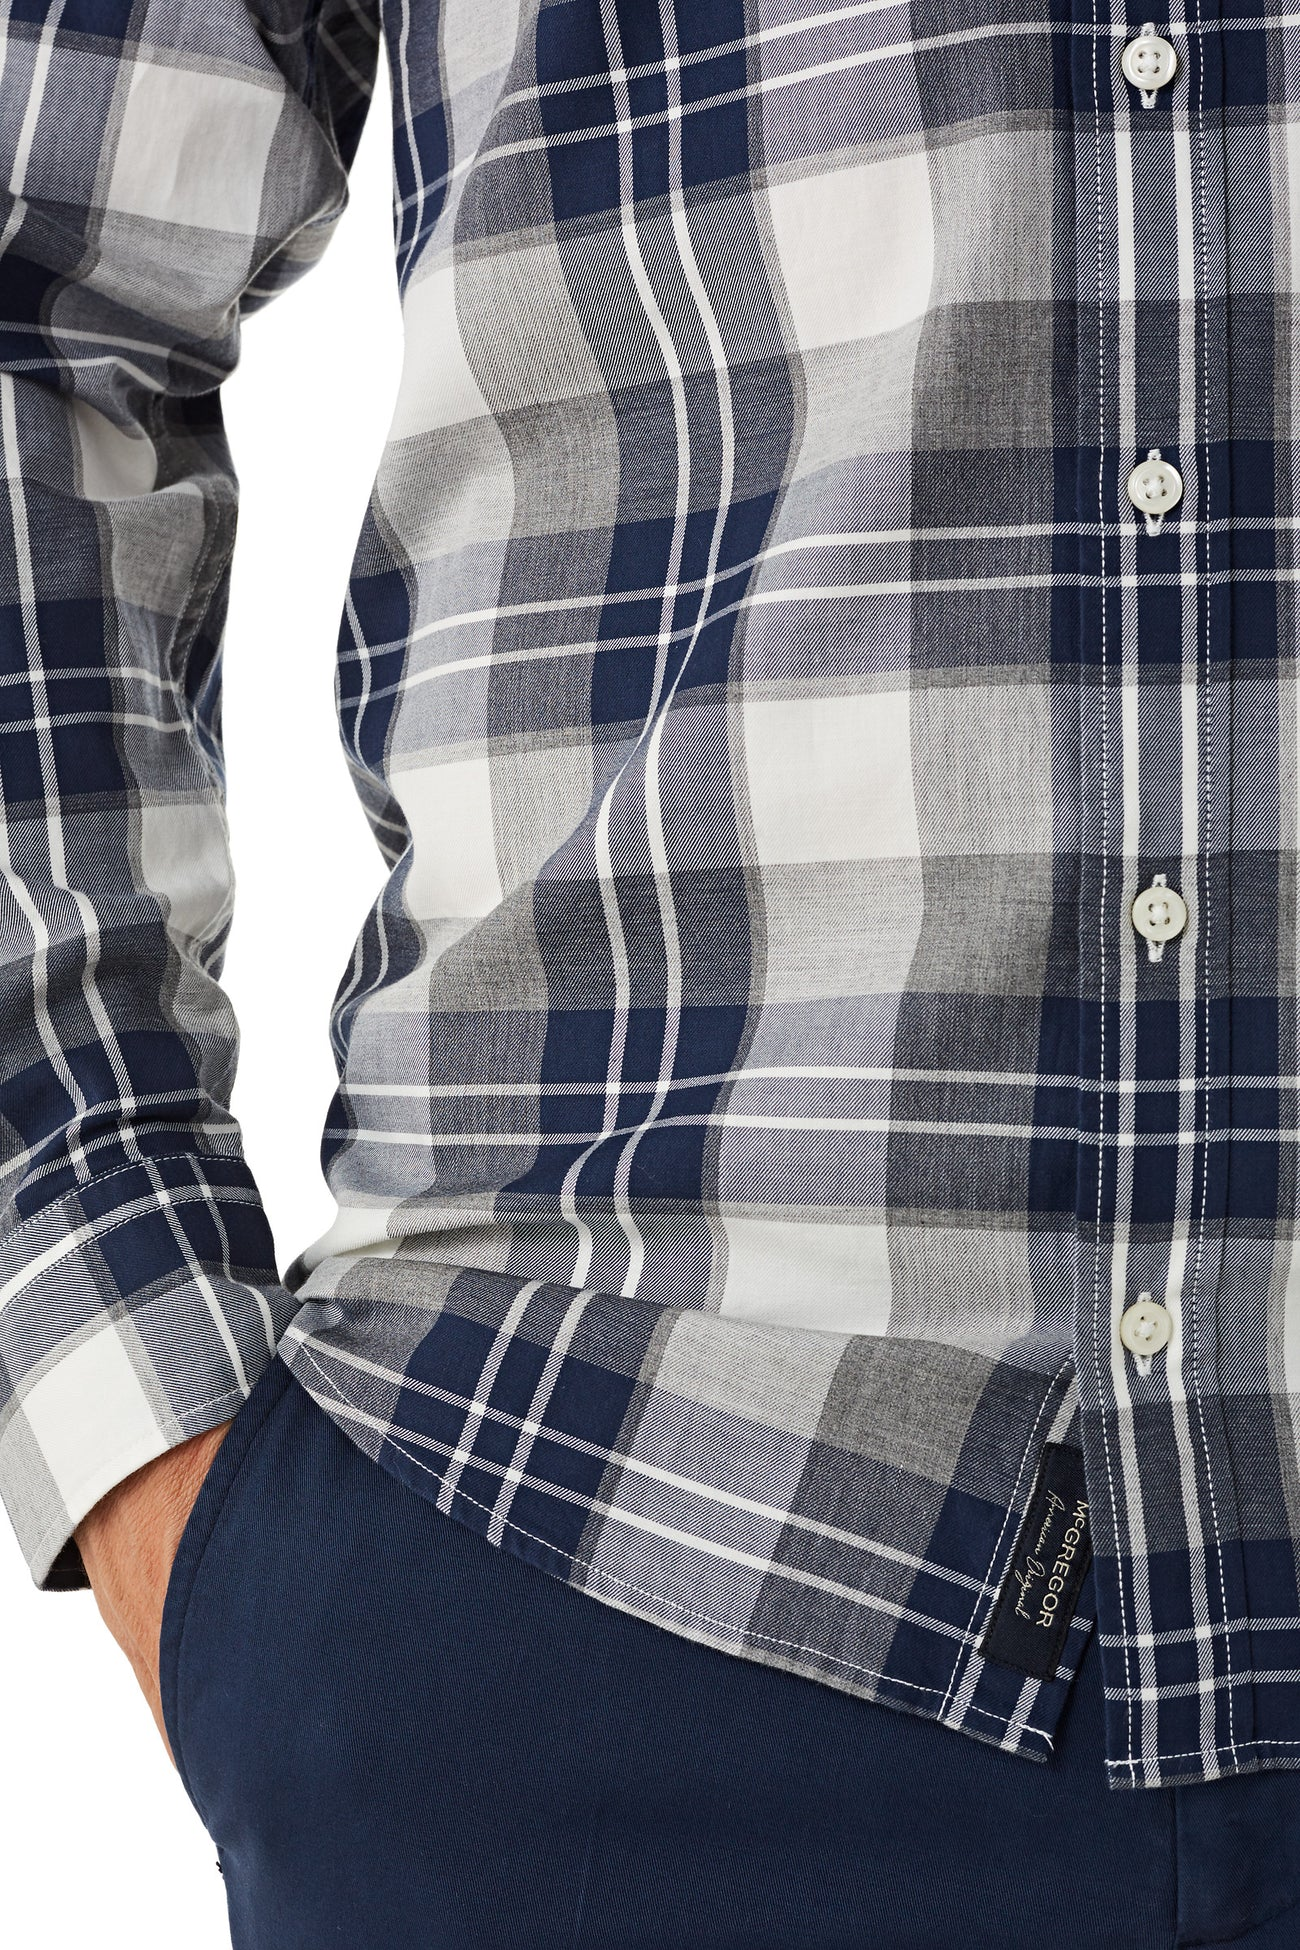 Cotton Shirt with Tartan Shirt Regular Fit